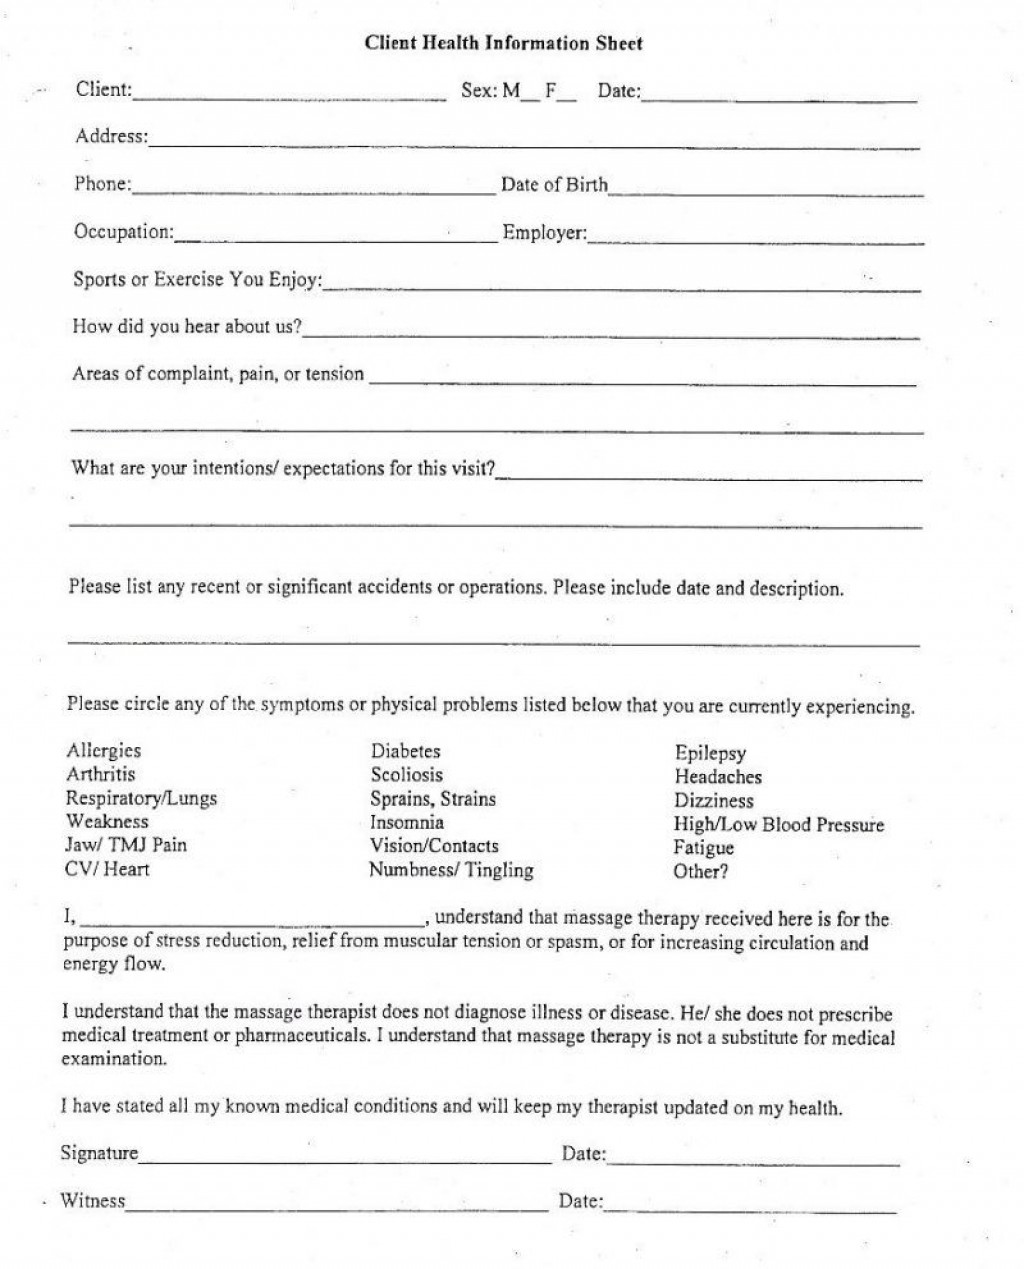 006 Exceptional Client Information Form Template Excel Inspiration Large